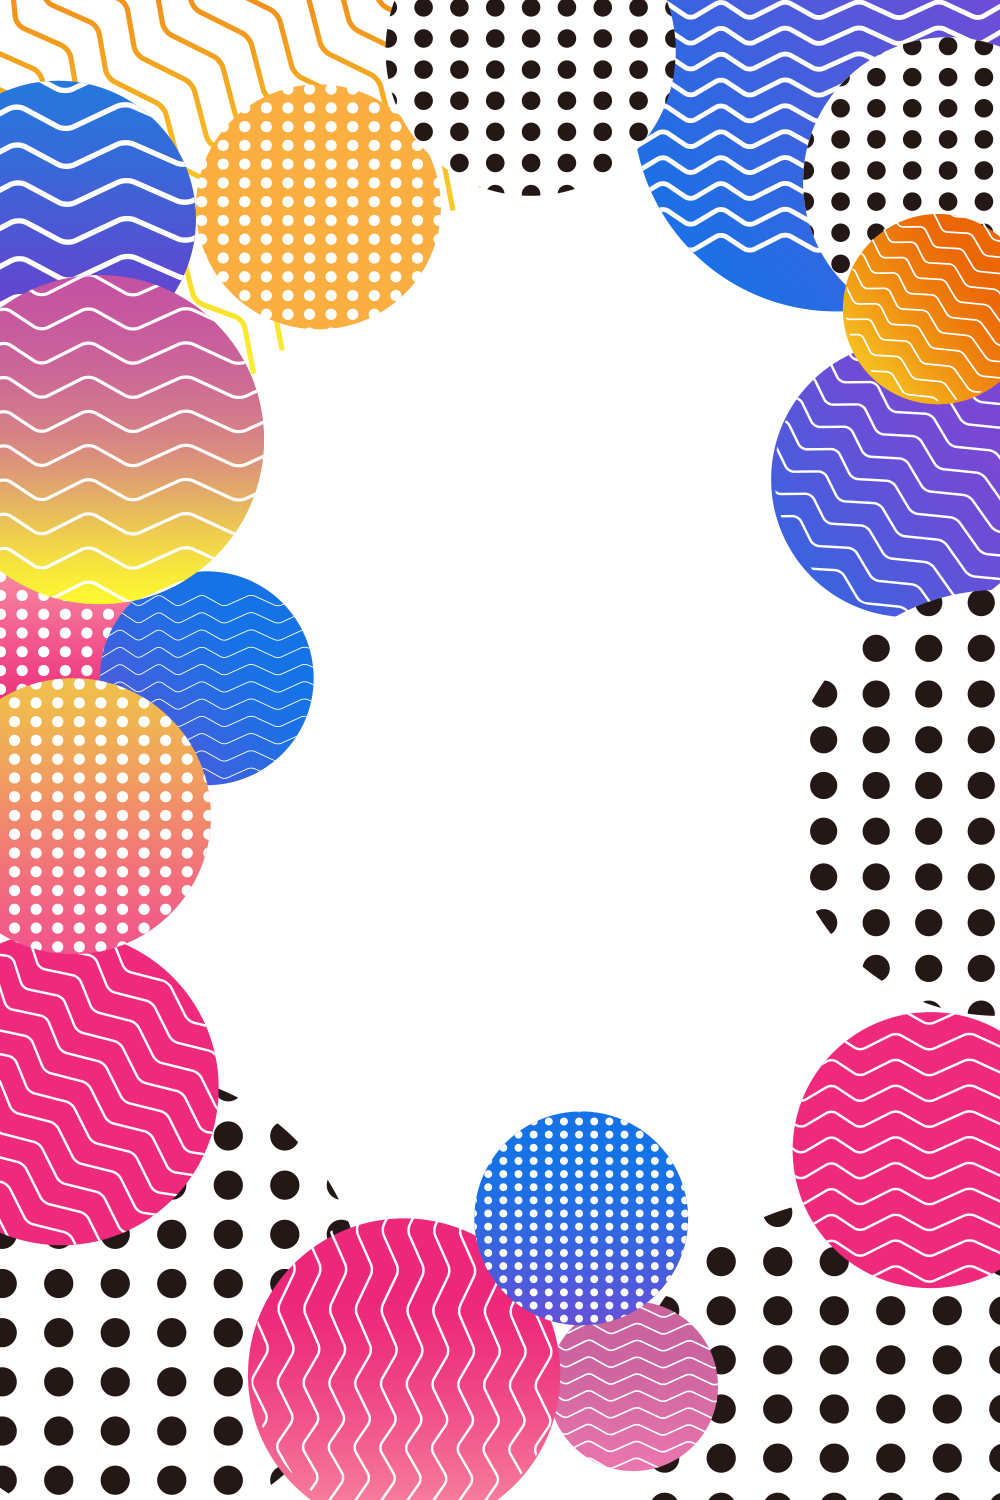 Pop art background dots png. Poster download summer is